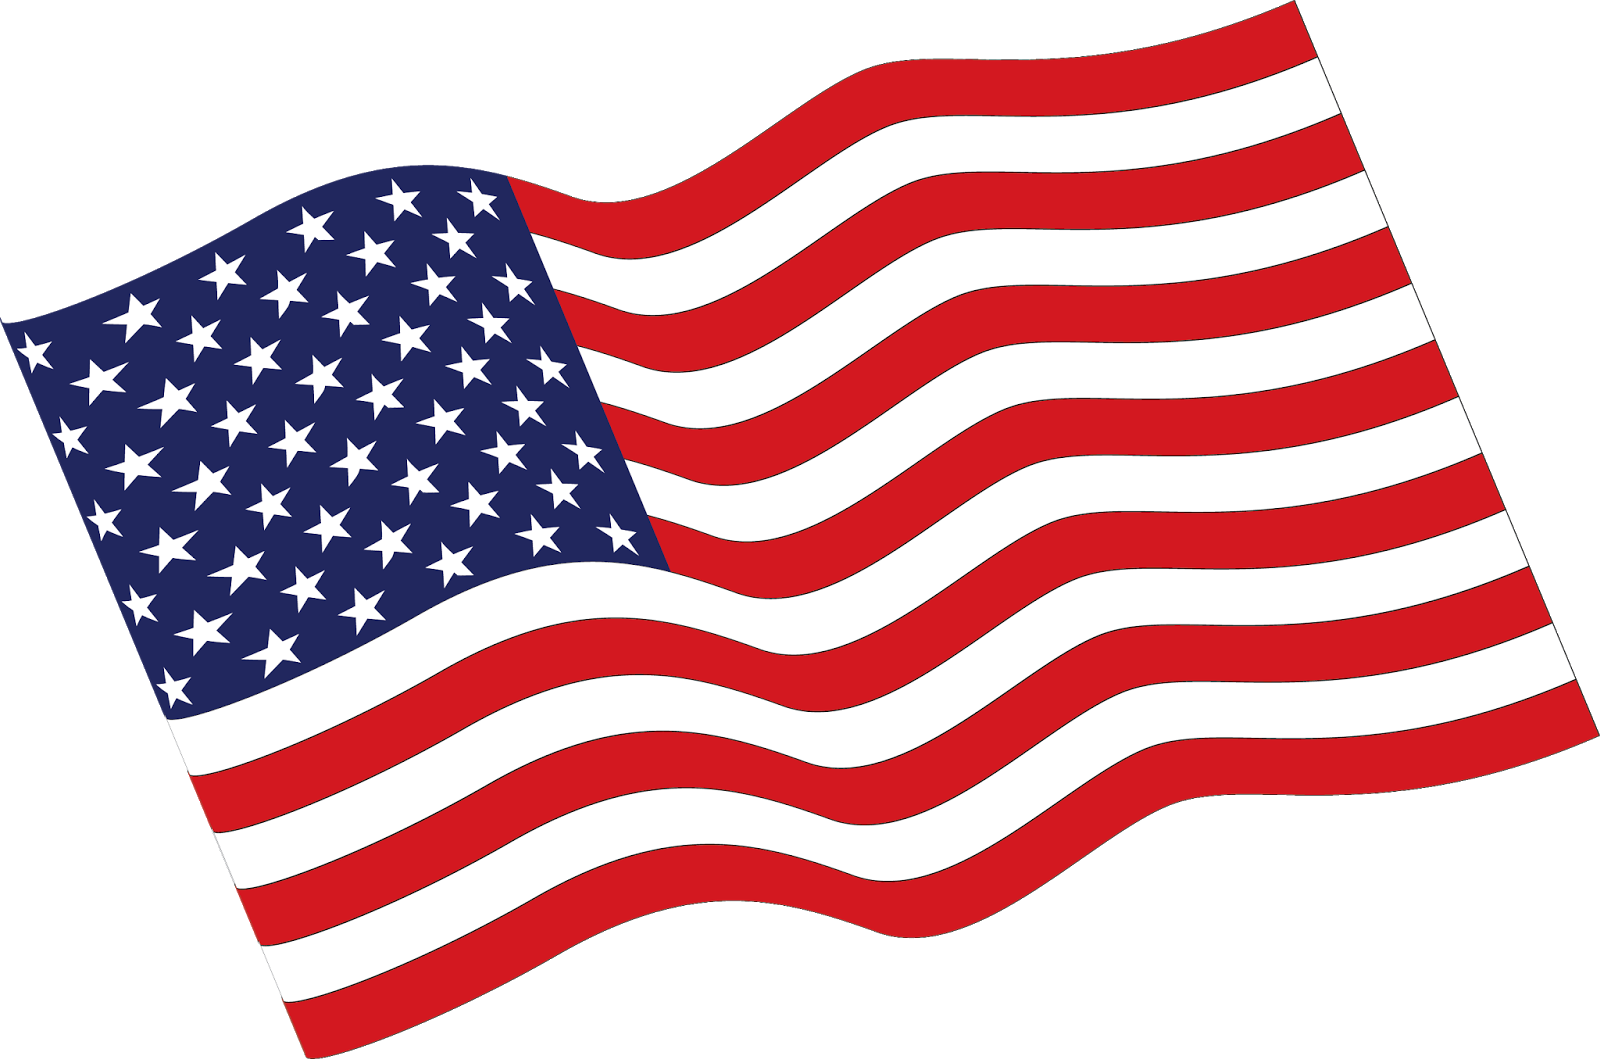 Flag Of The United States Clip Art - Vector American Flag ...